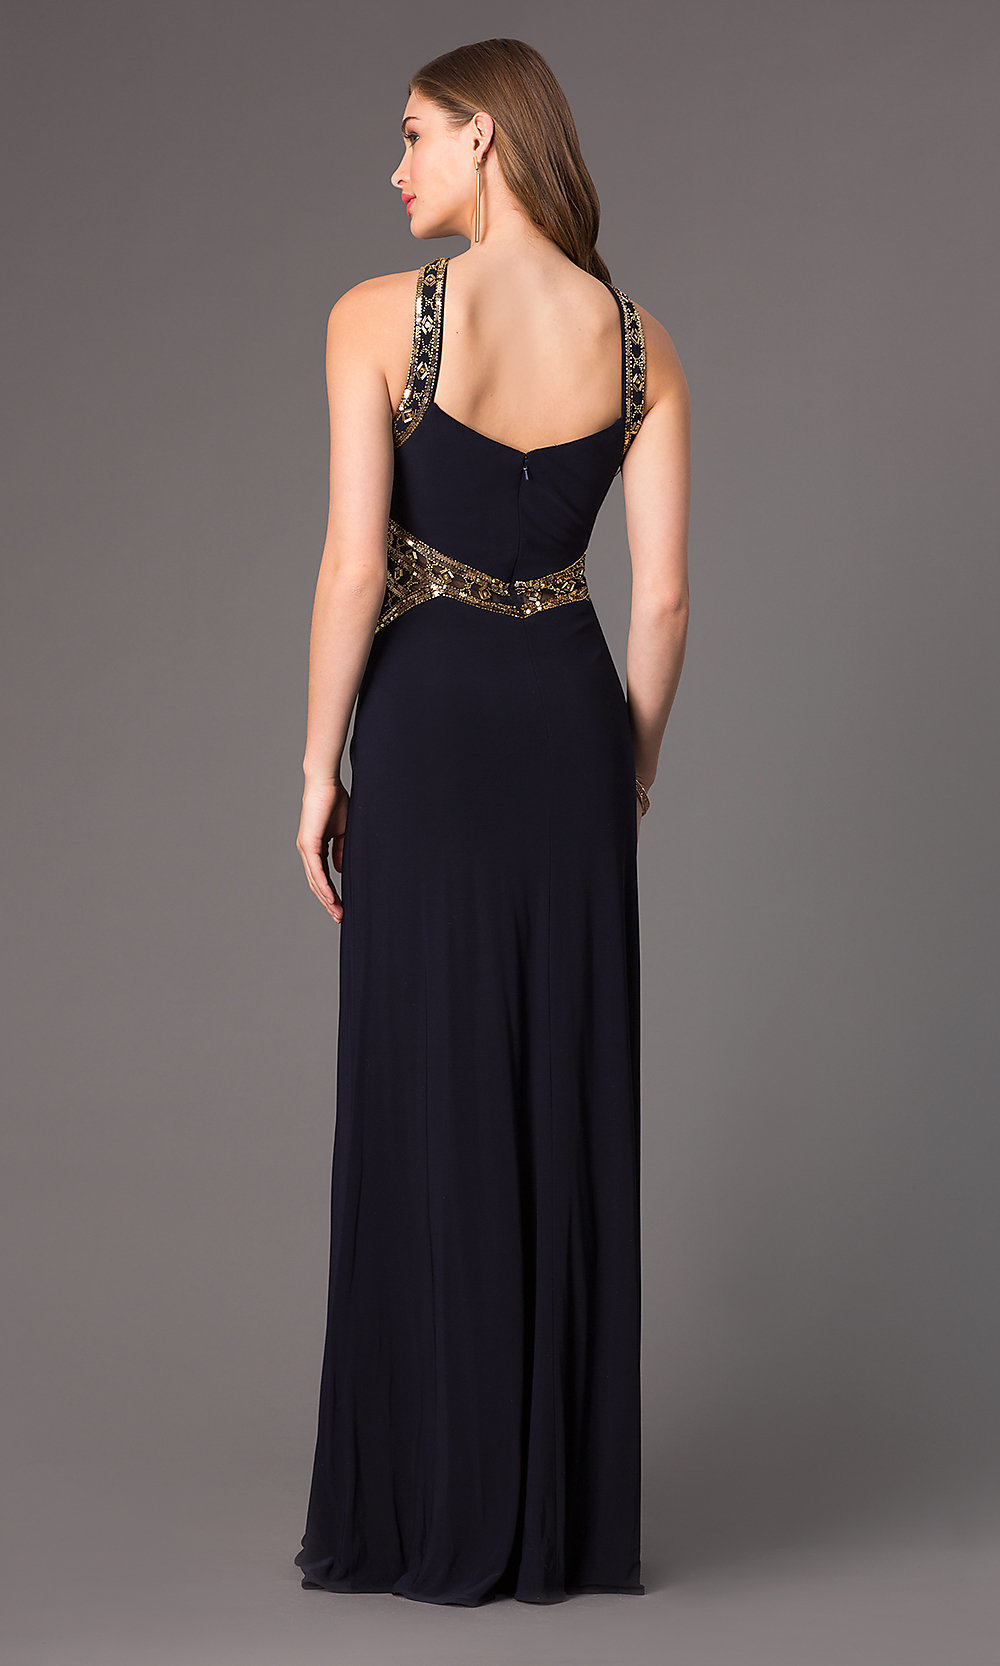 Betsy & Adam Sleeveless Long Prom Dress - PromGirl